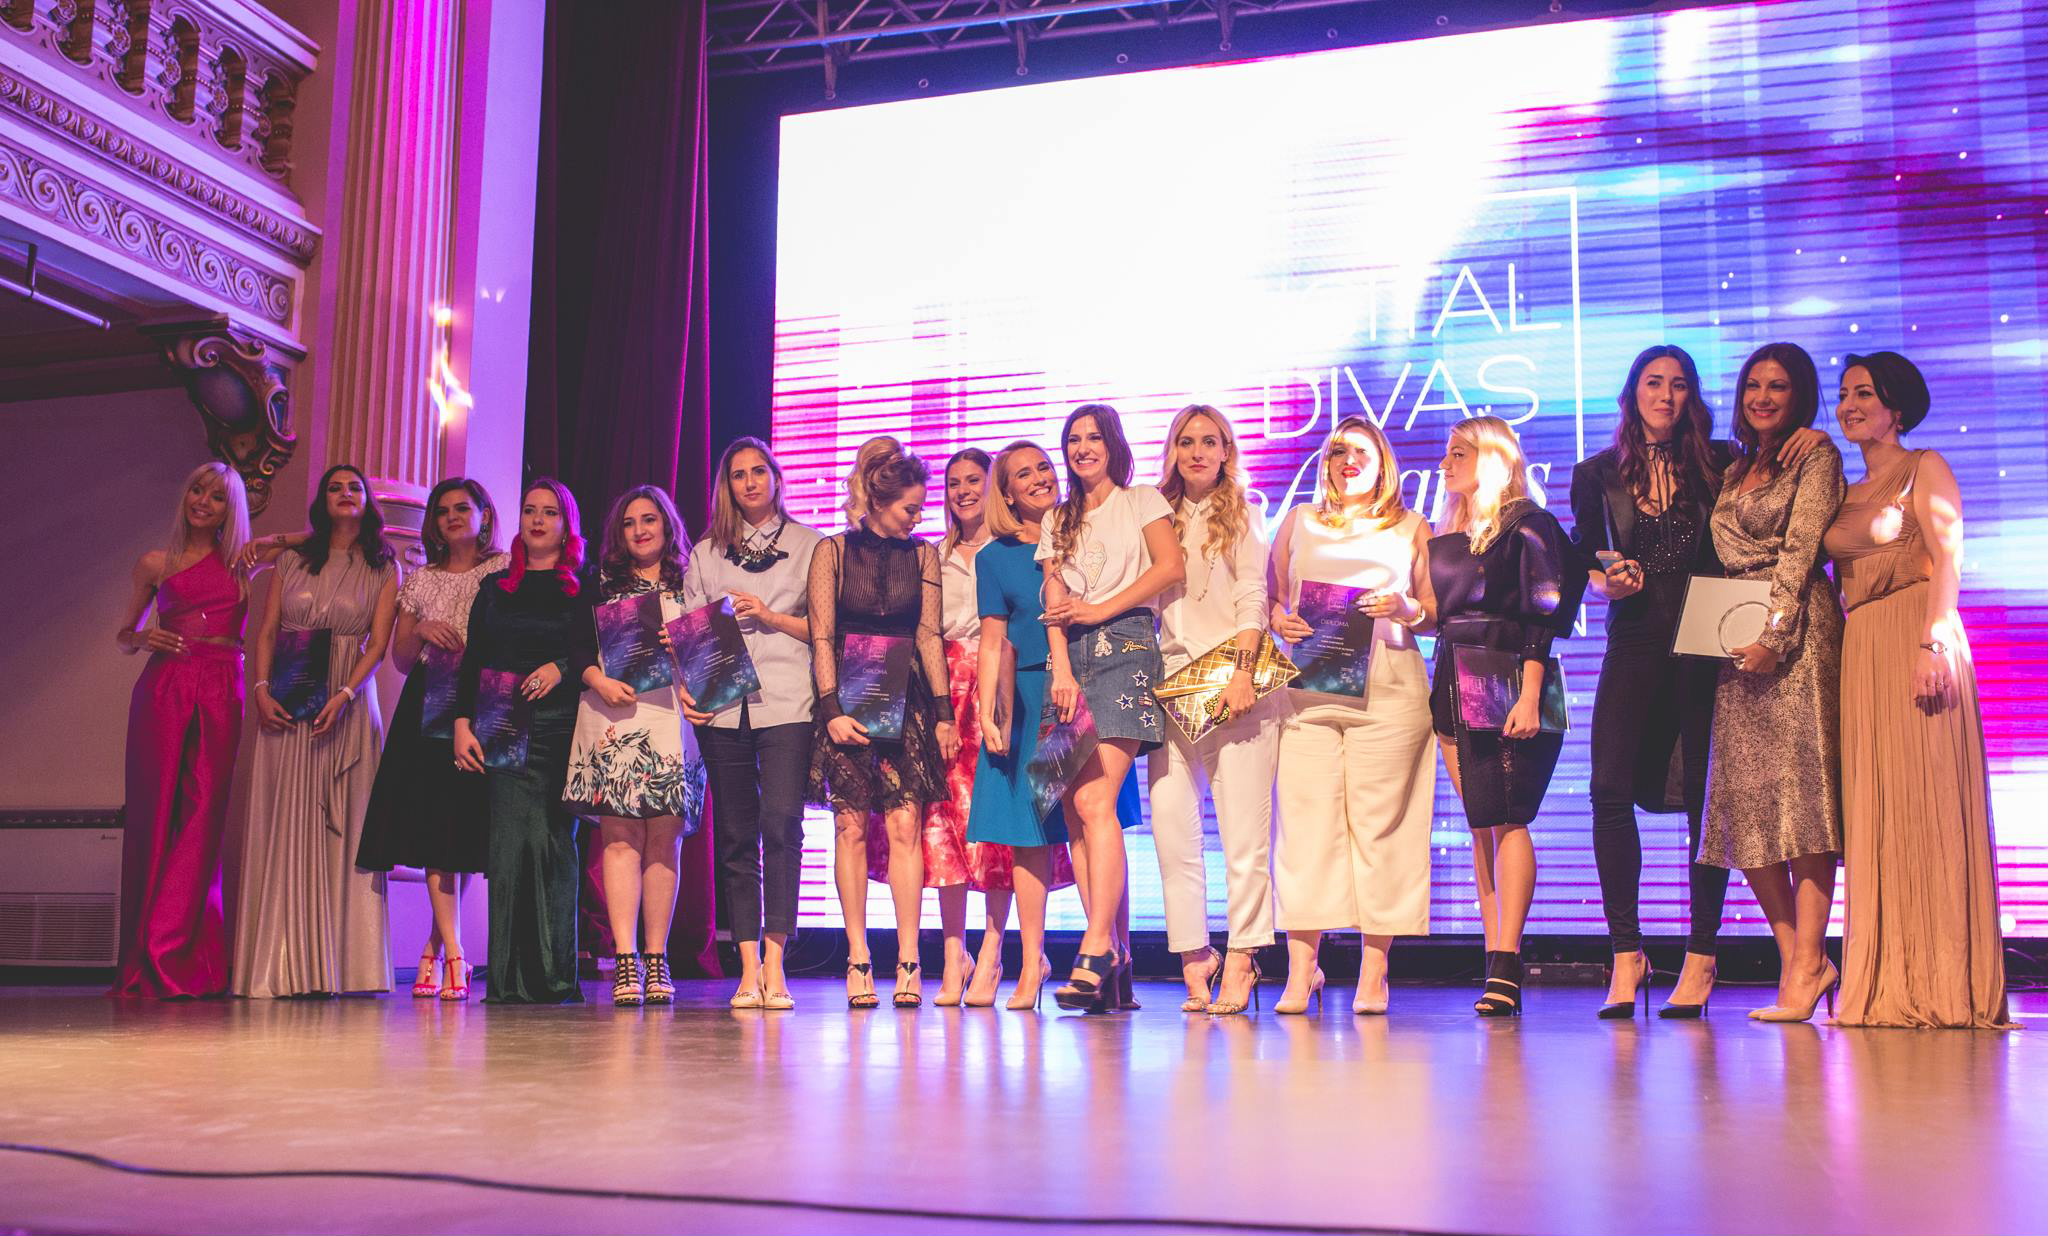 Digital Divas 2016. The Dreamers, The Doers, The Trendsetters.